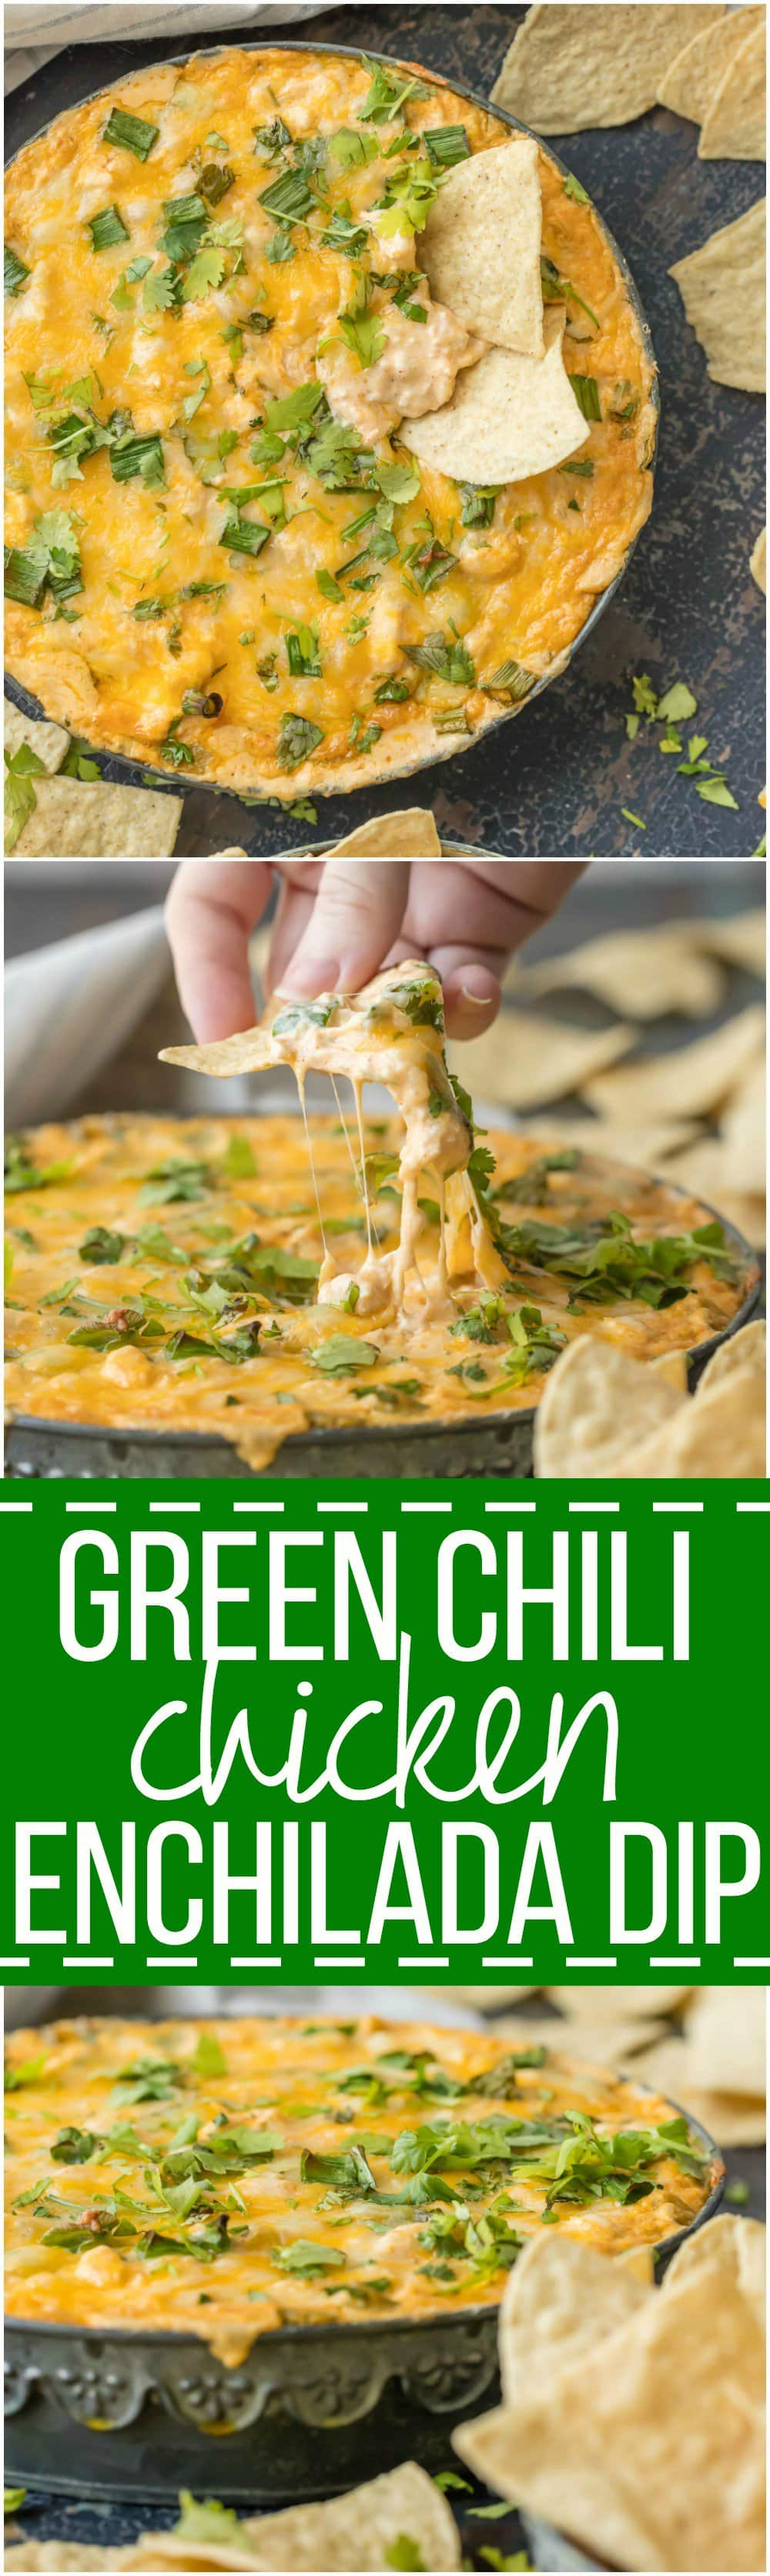 This GREEN CHILE CHICKEN ENCHILADA DIP is the ultimate party food, loaded with chicken, green chiles, cream cheese, sour cream, and so much more. It will be gone in minutes from any get together.